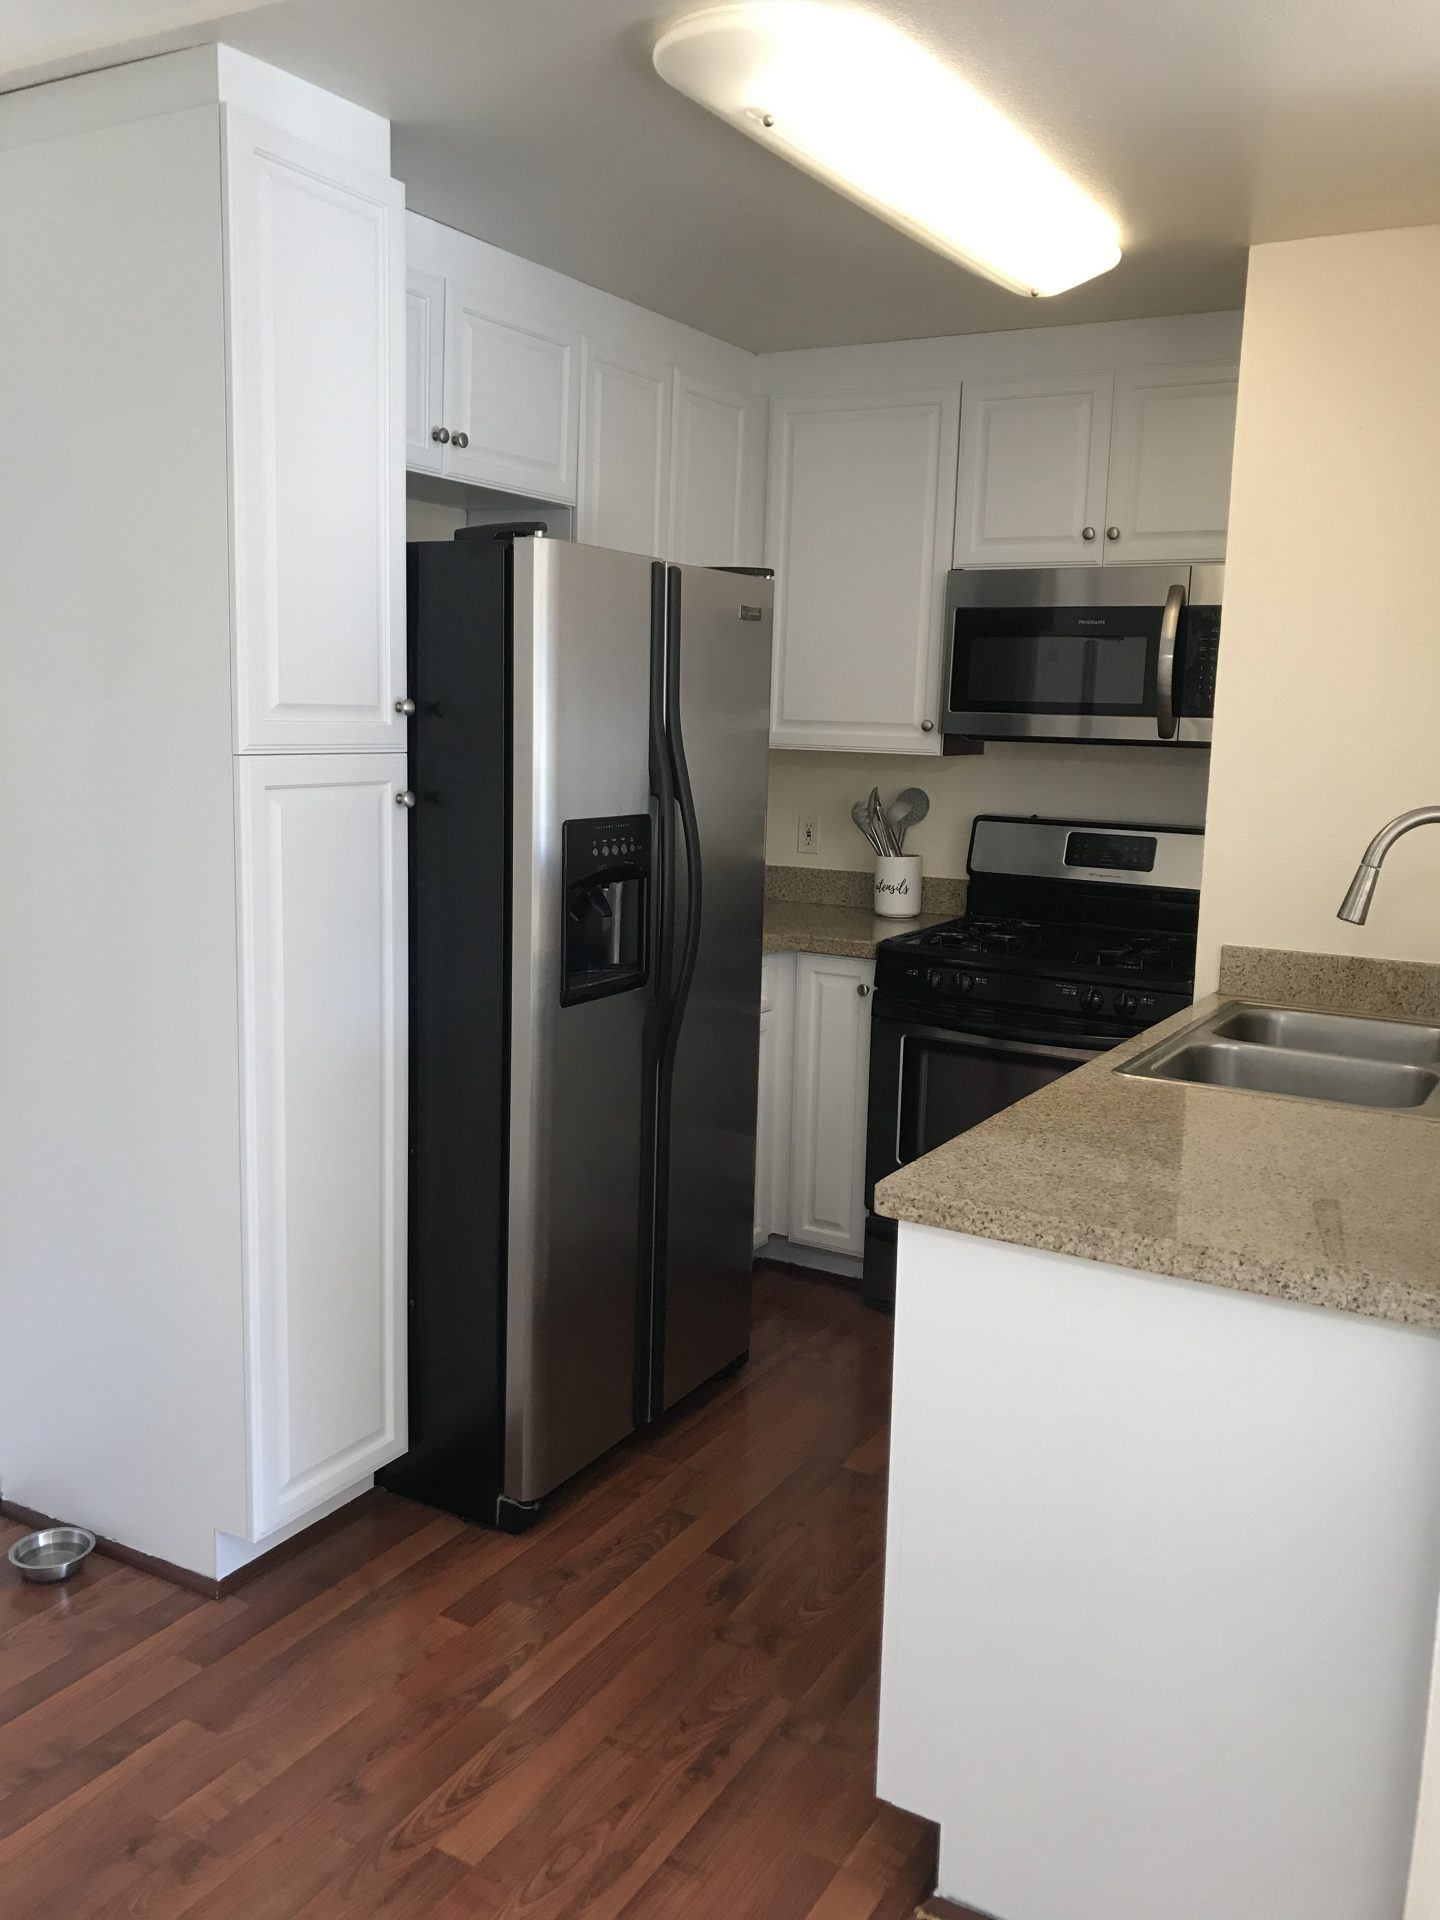 Looking to remodel your kitchen on a budget? Los Angeles Blogger My Teacher Got Style is sharing her top tips to remodel your kitchen on a budget. See them HERE!